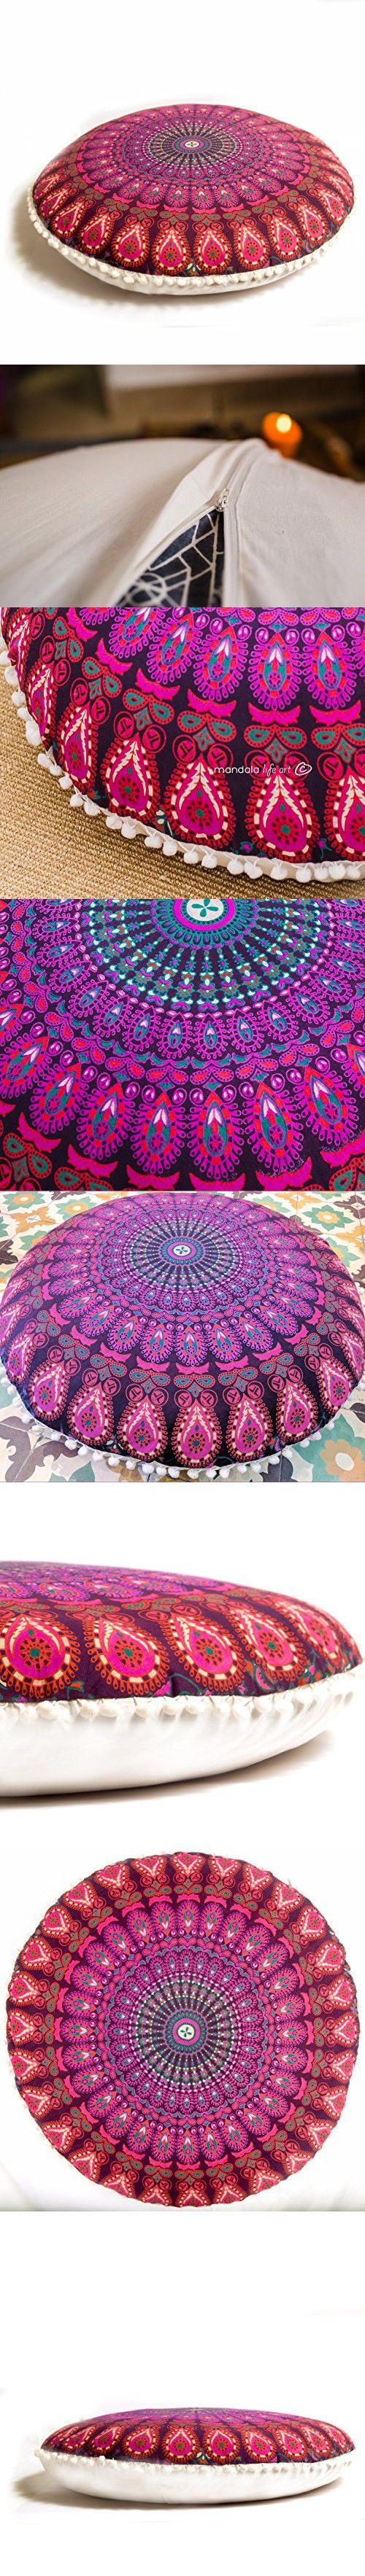 Bohemian Decor Floor Cushion Cover - 30 Round Floor Pillow Pouf Cover - Colorful Purple 100% Hand Printed Organic Cotton by Mandala Life ART